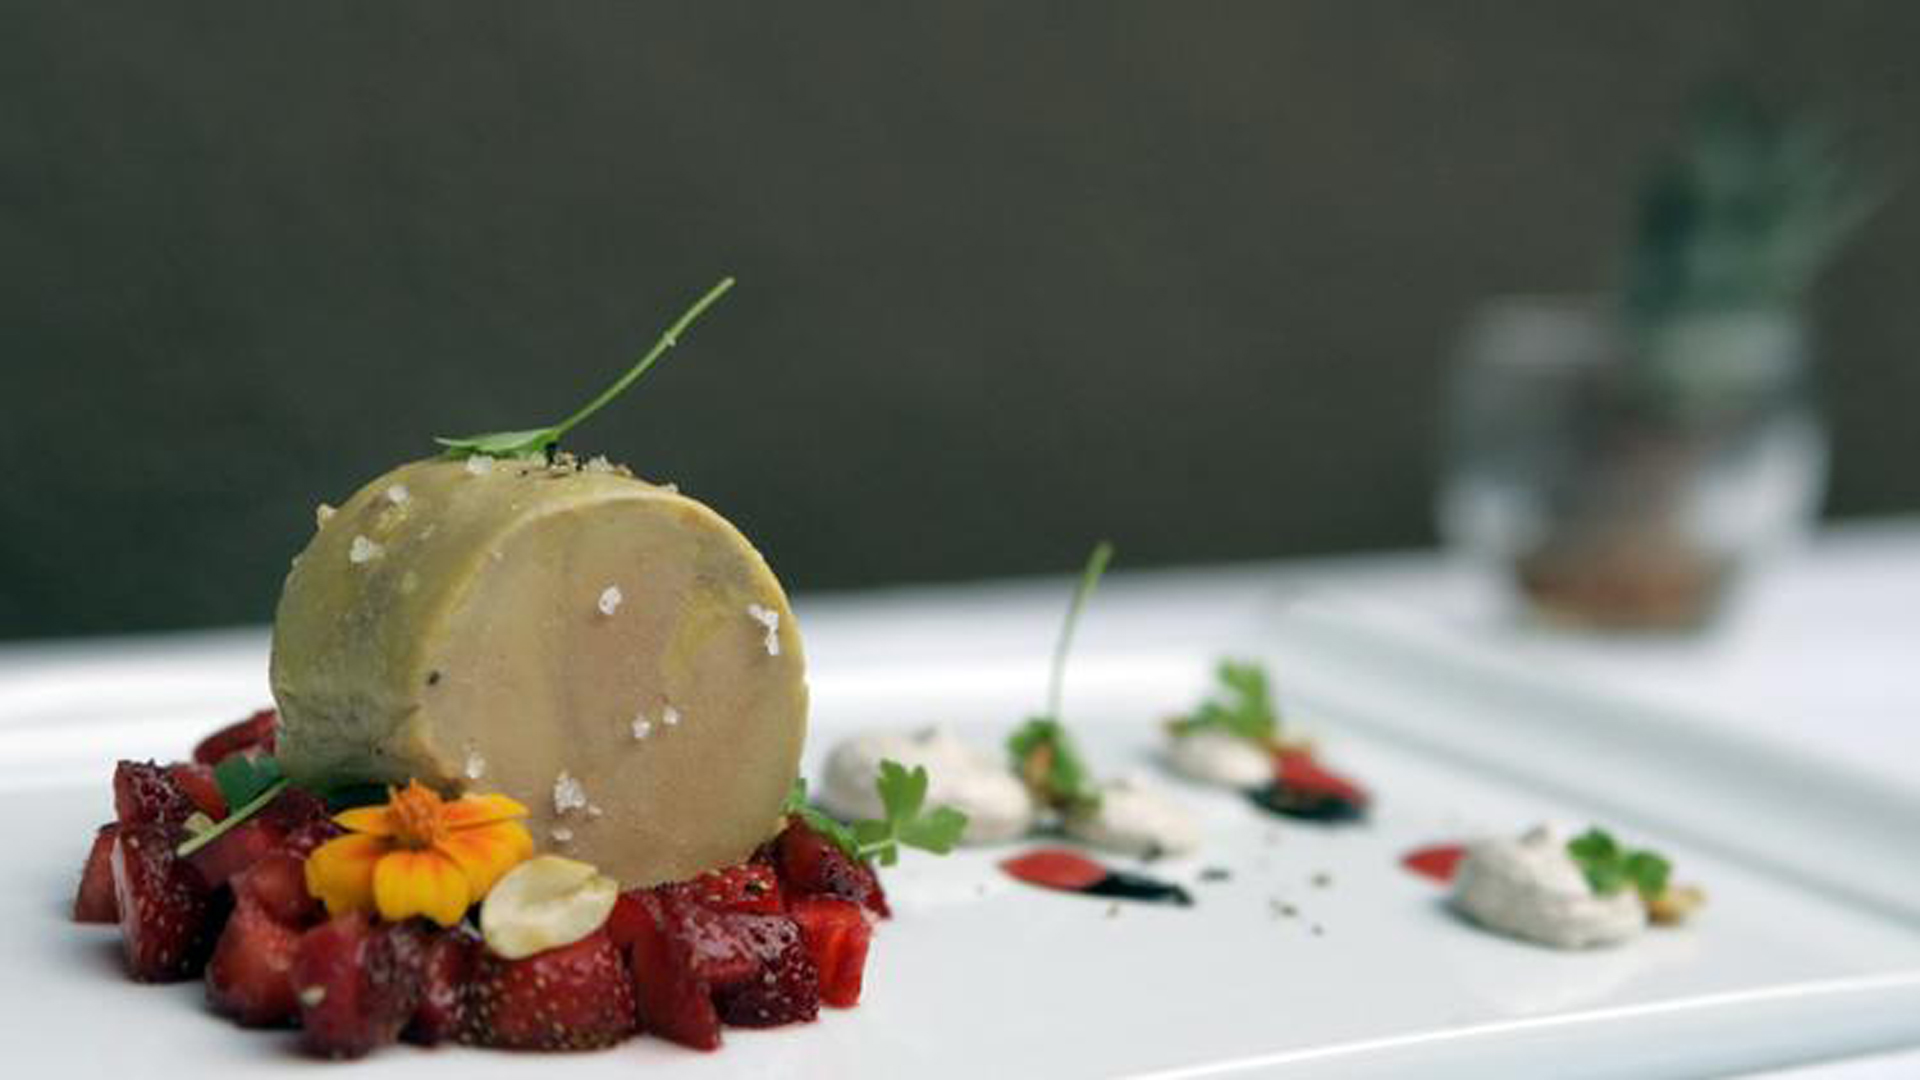 The foie gras terrine dish at Blanca Restaurant at Lido Center in Newport Beach. (Los Angeles Times)